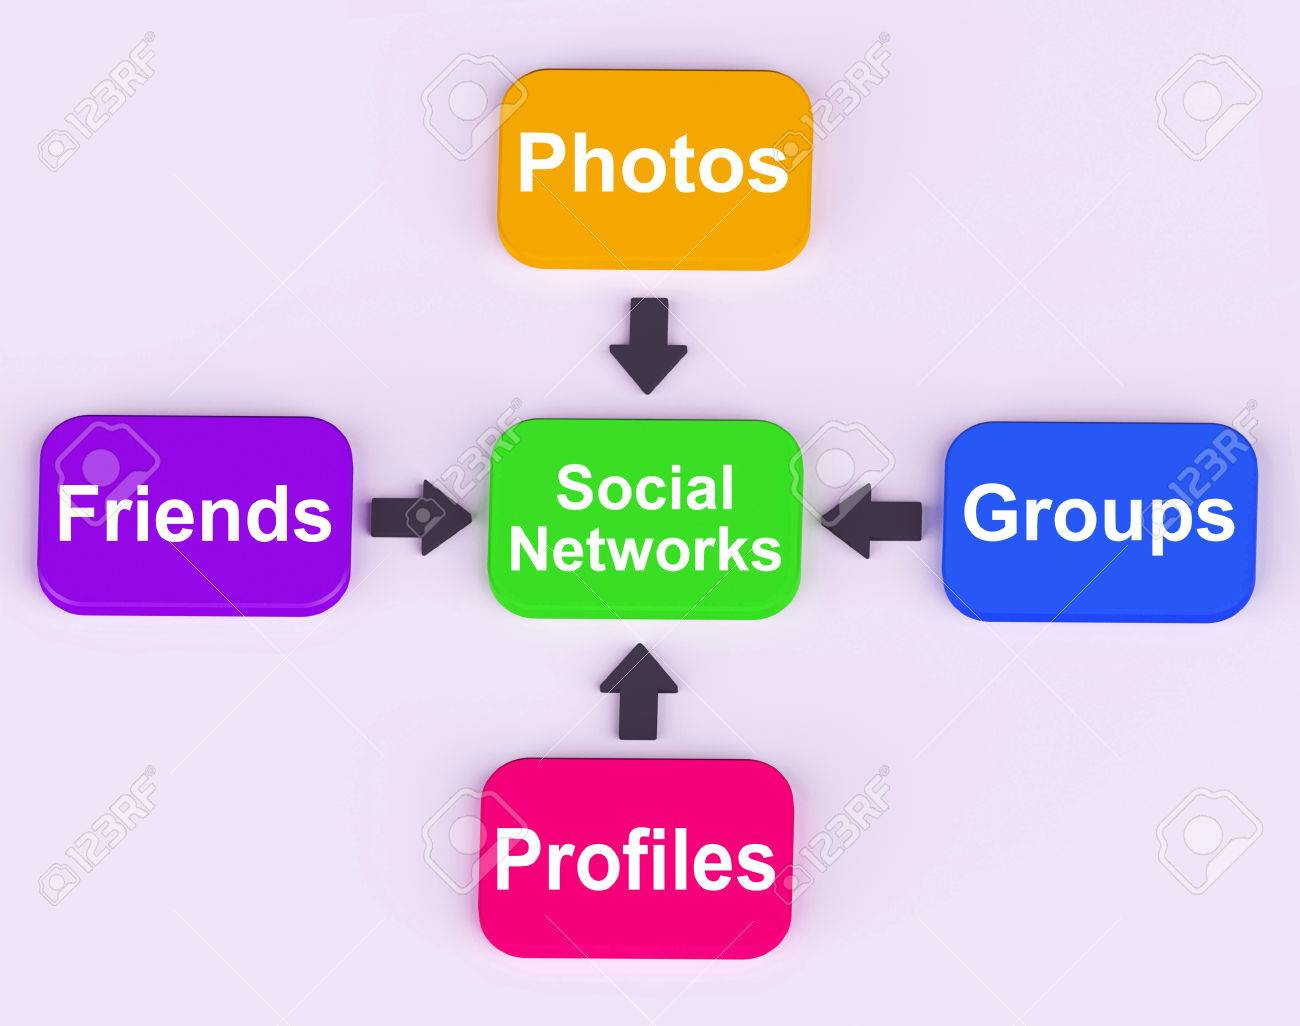 Social Networks Diagram Meaning Internet Networking Friends And Followers Stock Photo 26961684